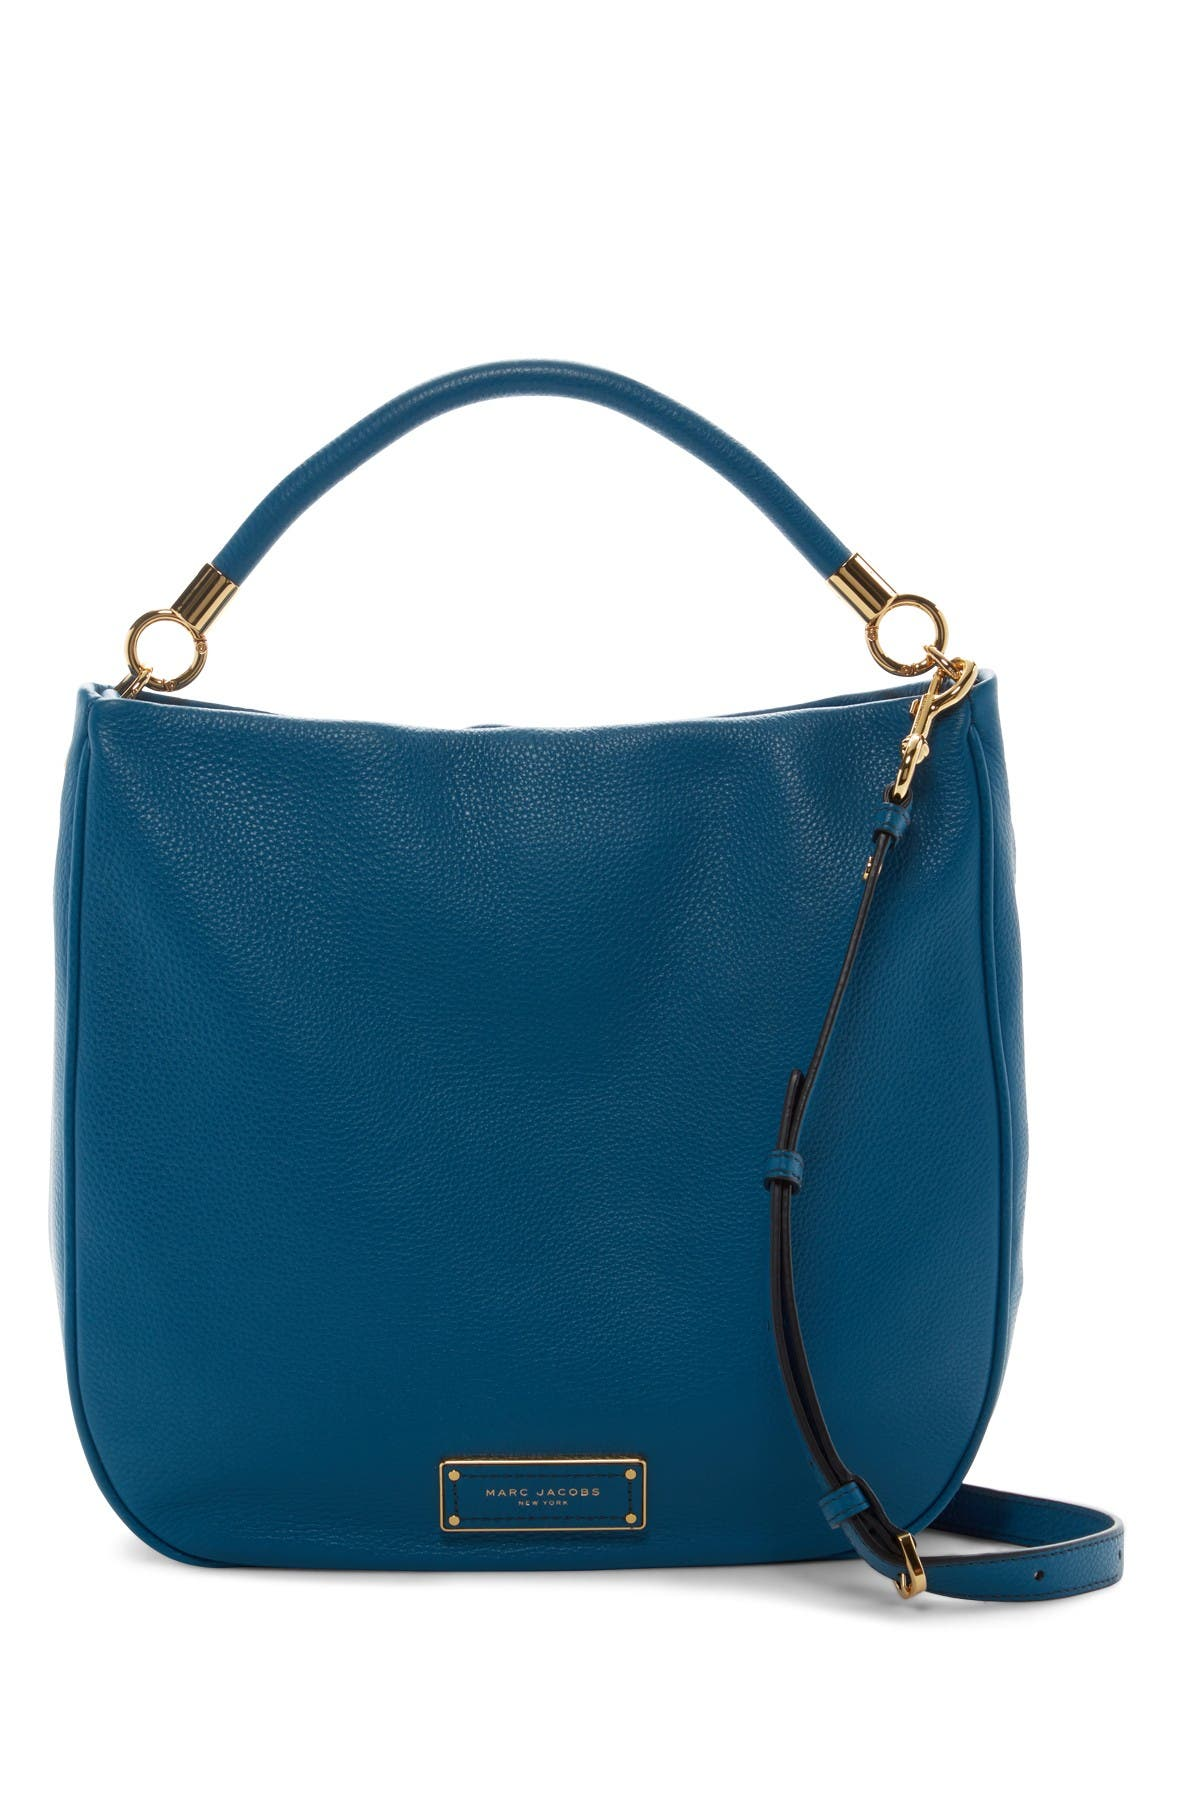 Image of Marc Jacobs Too Hot to Handle Leather Hobo Bag